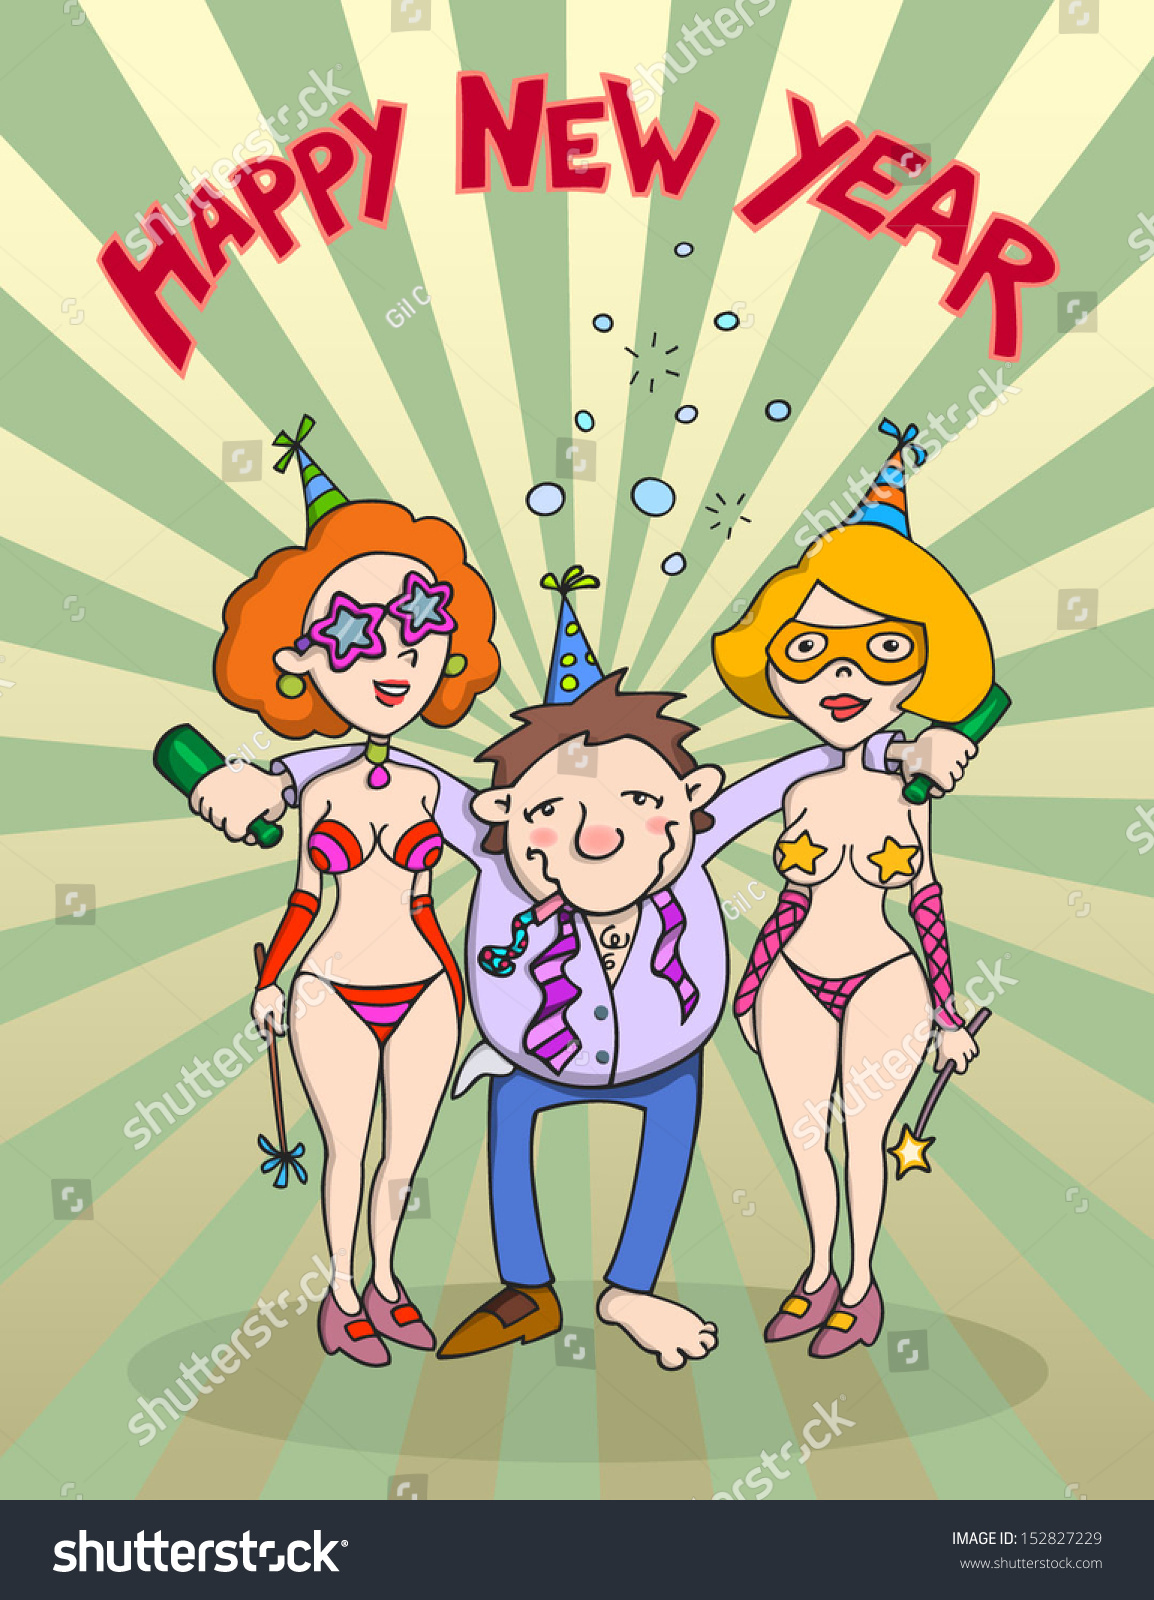 Happy new year stripper